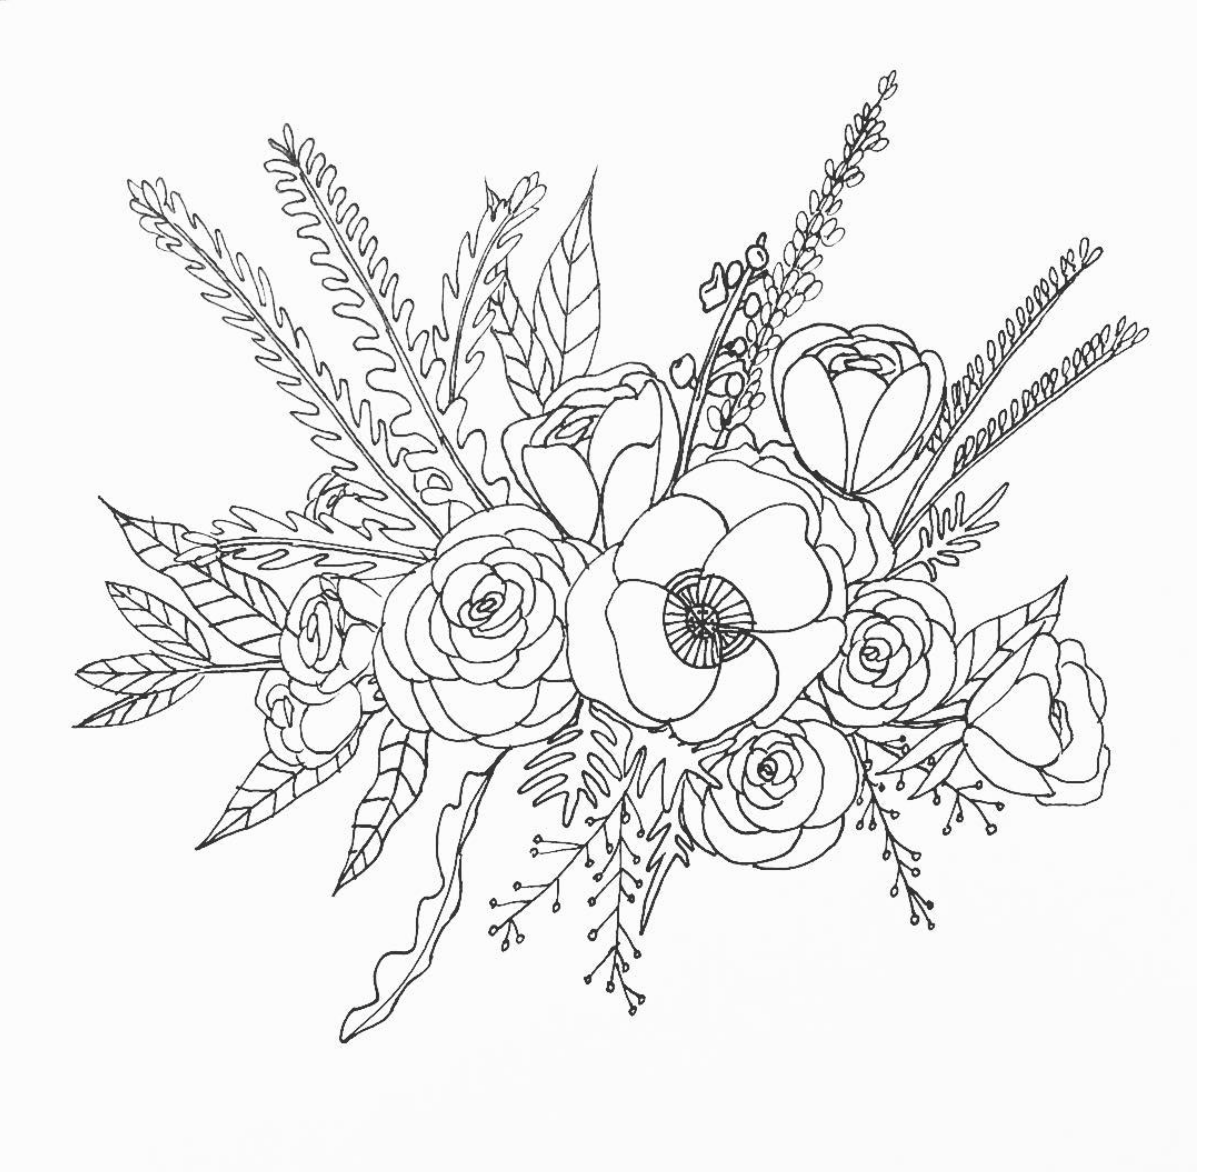 Line Drawing Flower Borders : Line drawing flower illustration floral bouquet art